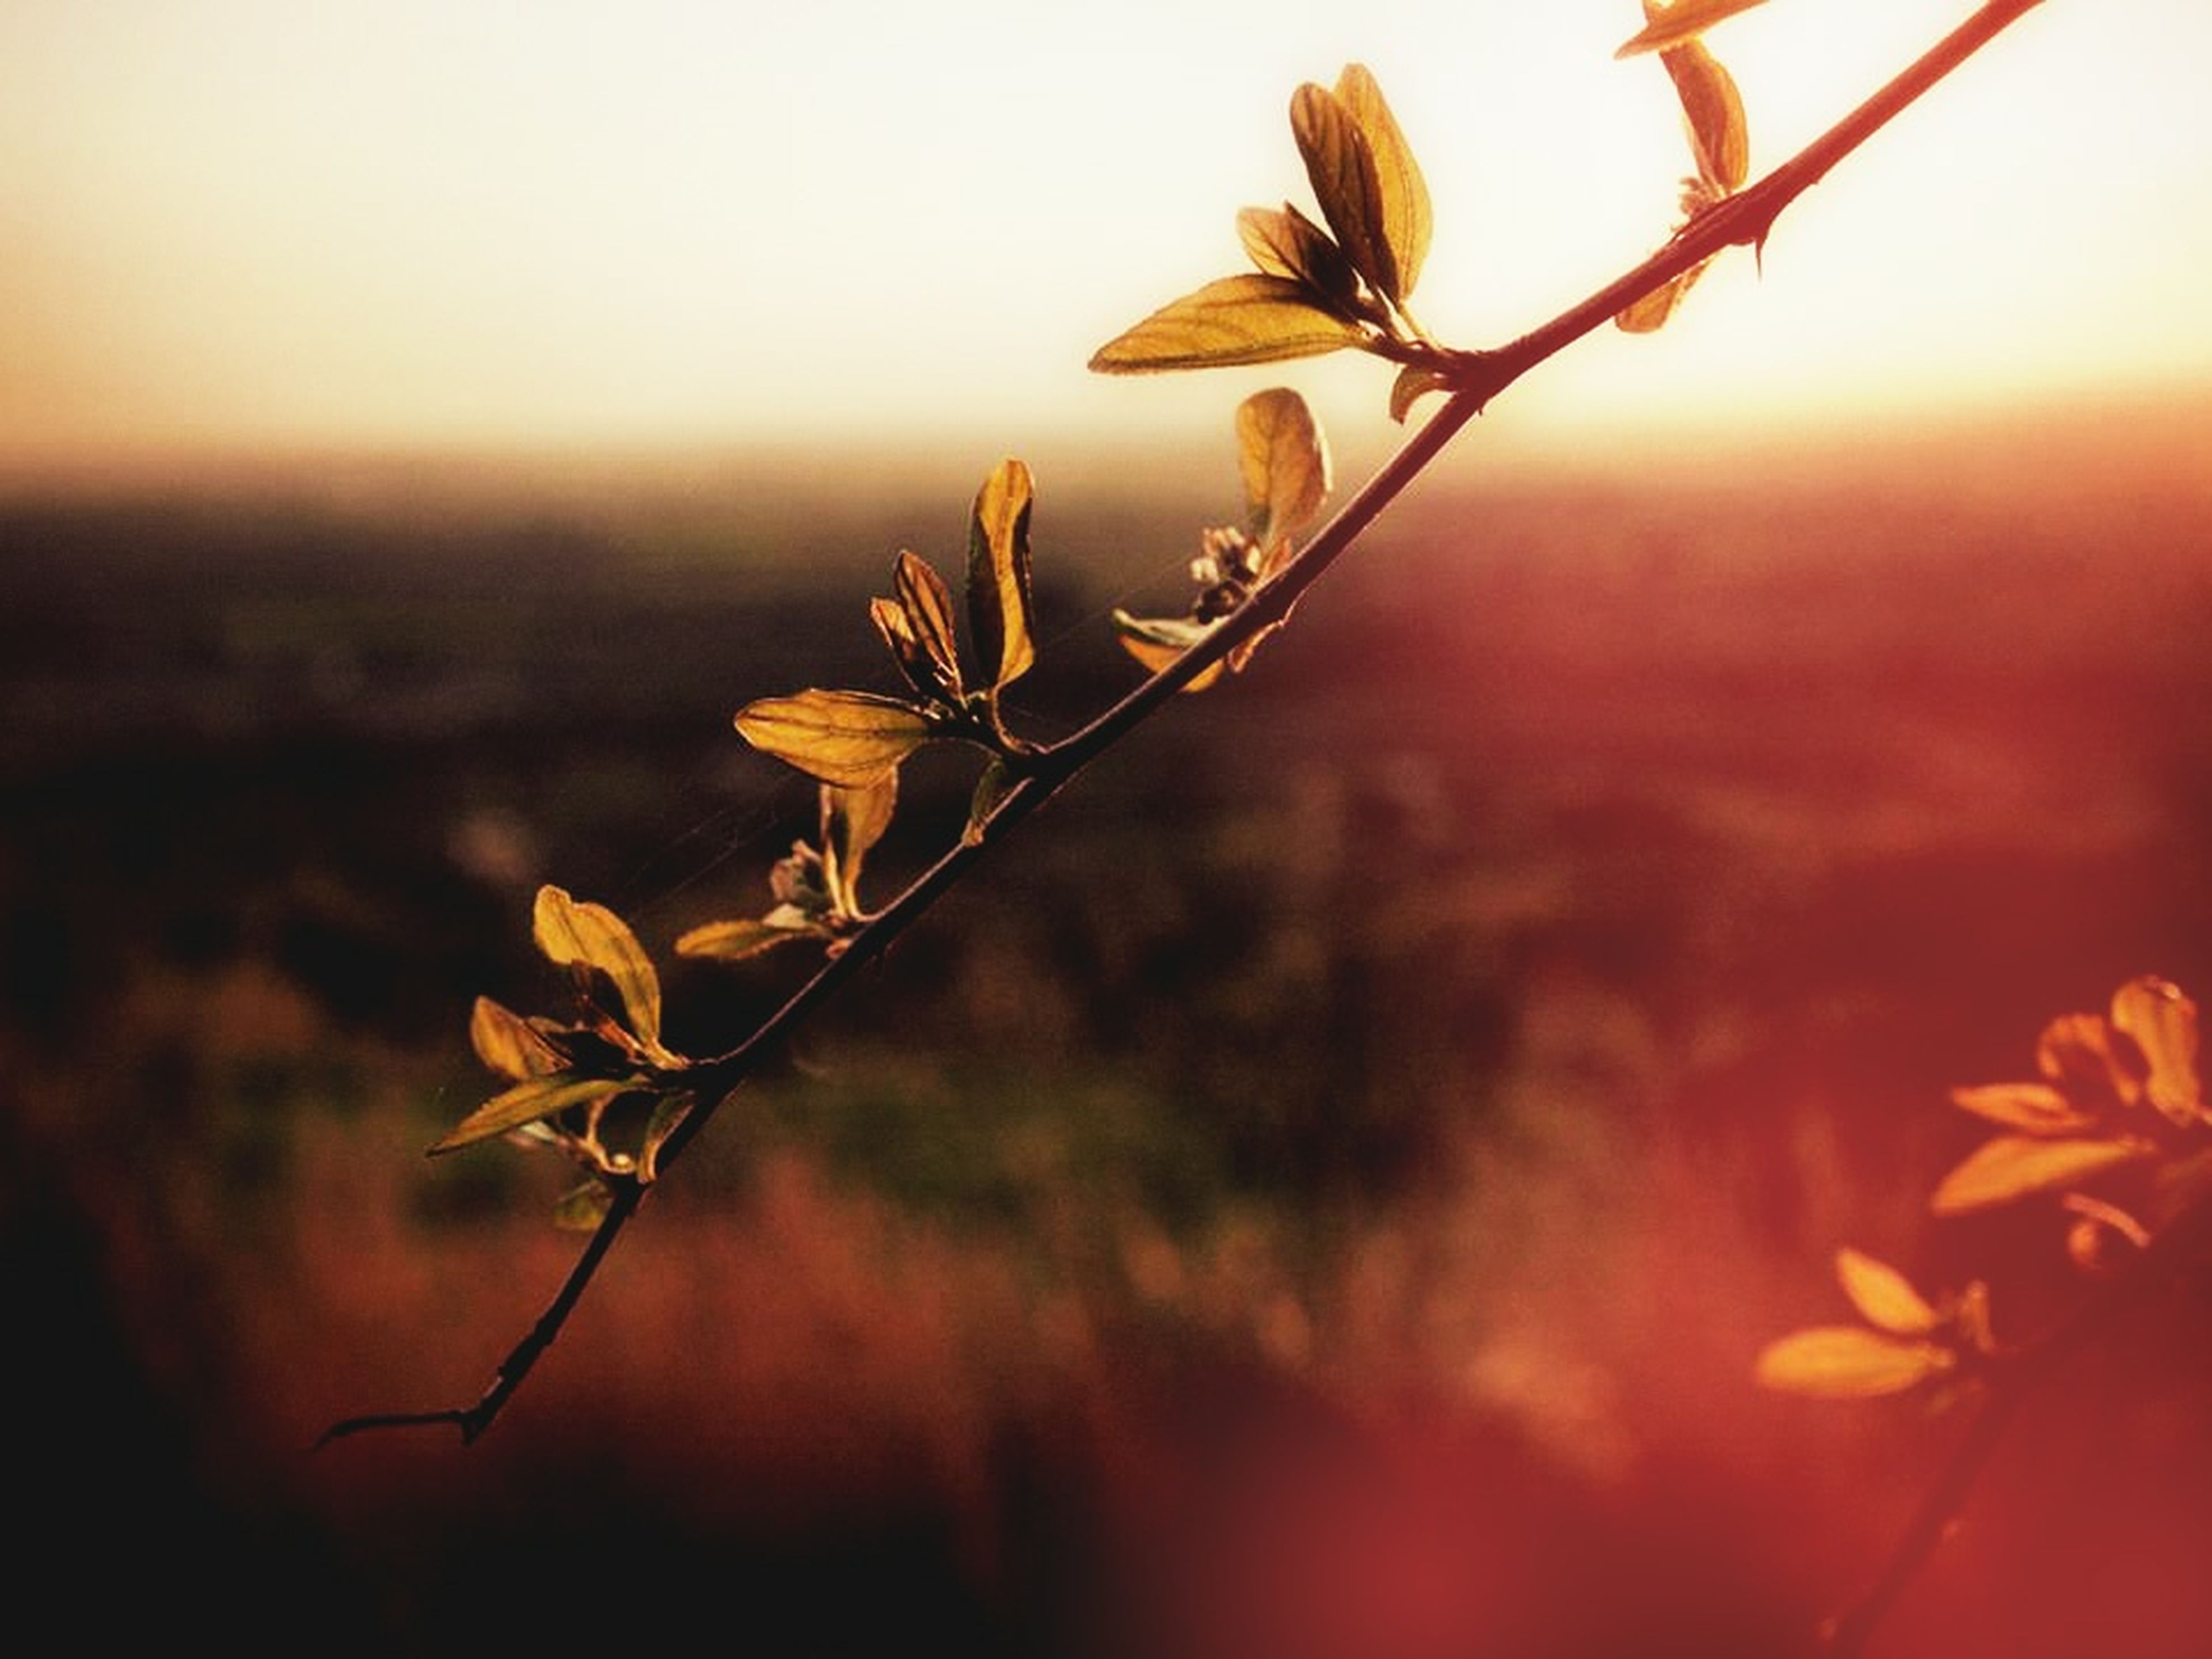 flower, growth, plant, fragility, freshness, focus on foreground, stem, beauty in nature, nature, close-up, sunset, selective focus, bud, field, petal, flower head, tranquility, botany, orange color, outdoors